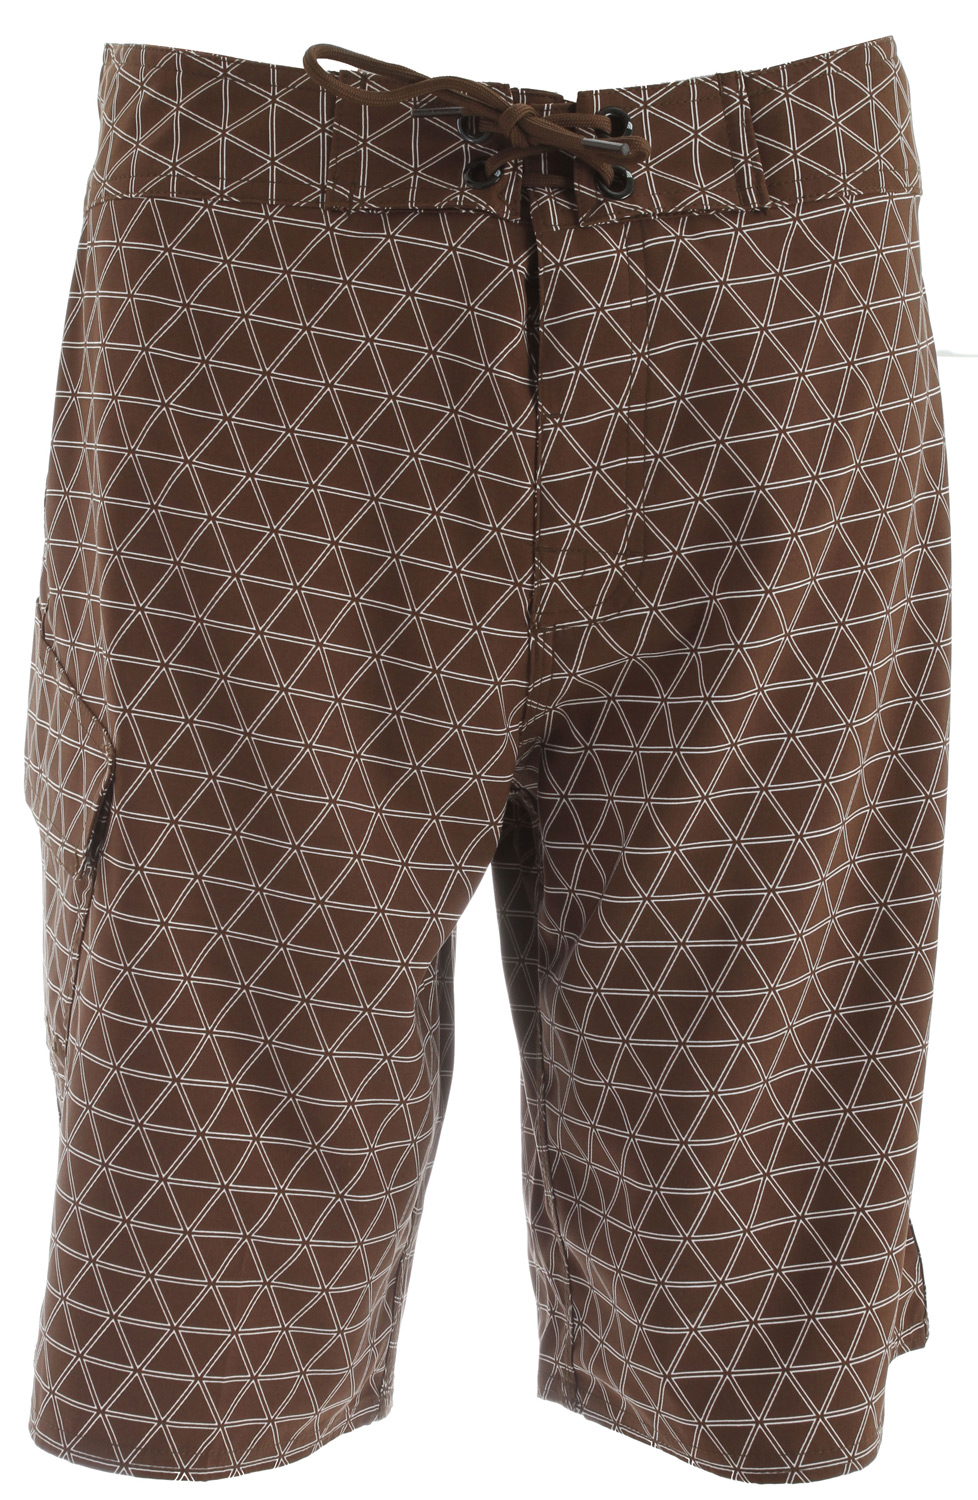 Surf Key Features of the The North Face Class V Stretch Printed Boardshorts: Fabric: 176 g/m2 100% polyester with mechanical stretch Lightweight, quick-drying, abrasion resistant Ultraviolet protection factor (UPF) 50 Boardshort waist tie with fly gusset Side utility pocket - $32.95